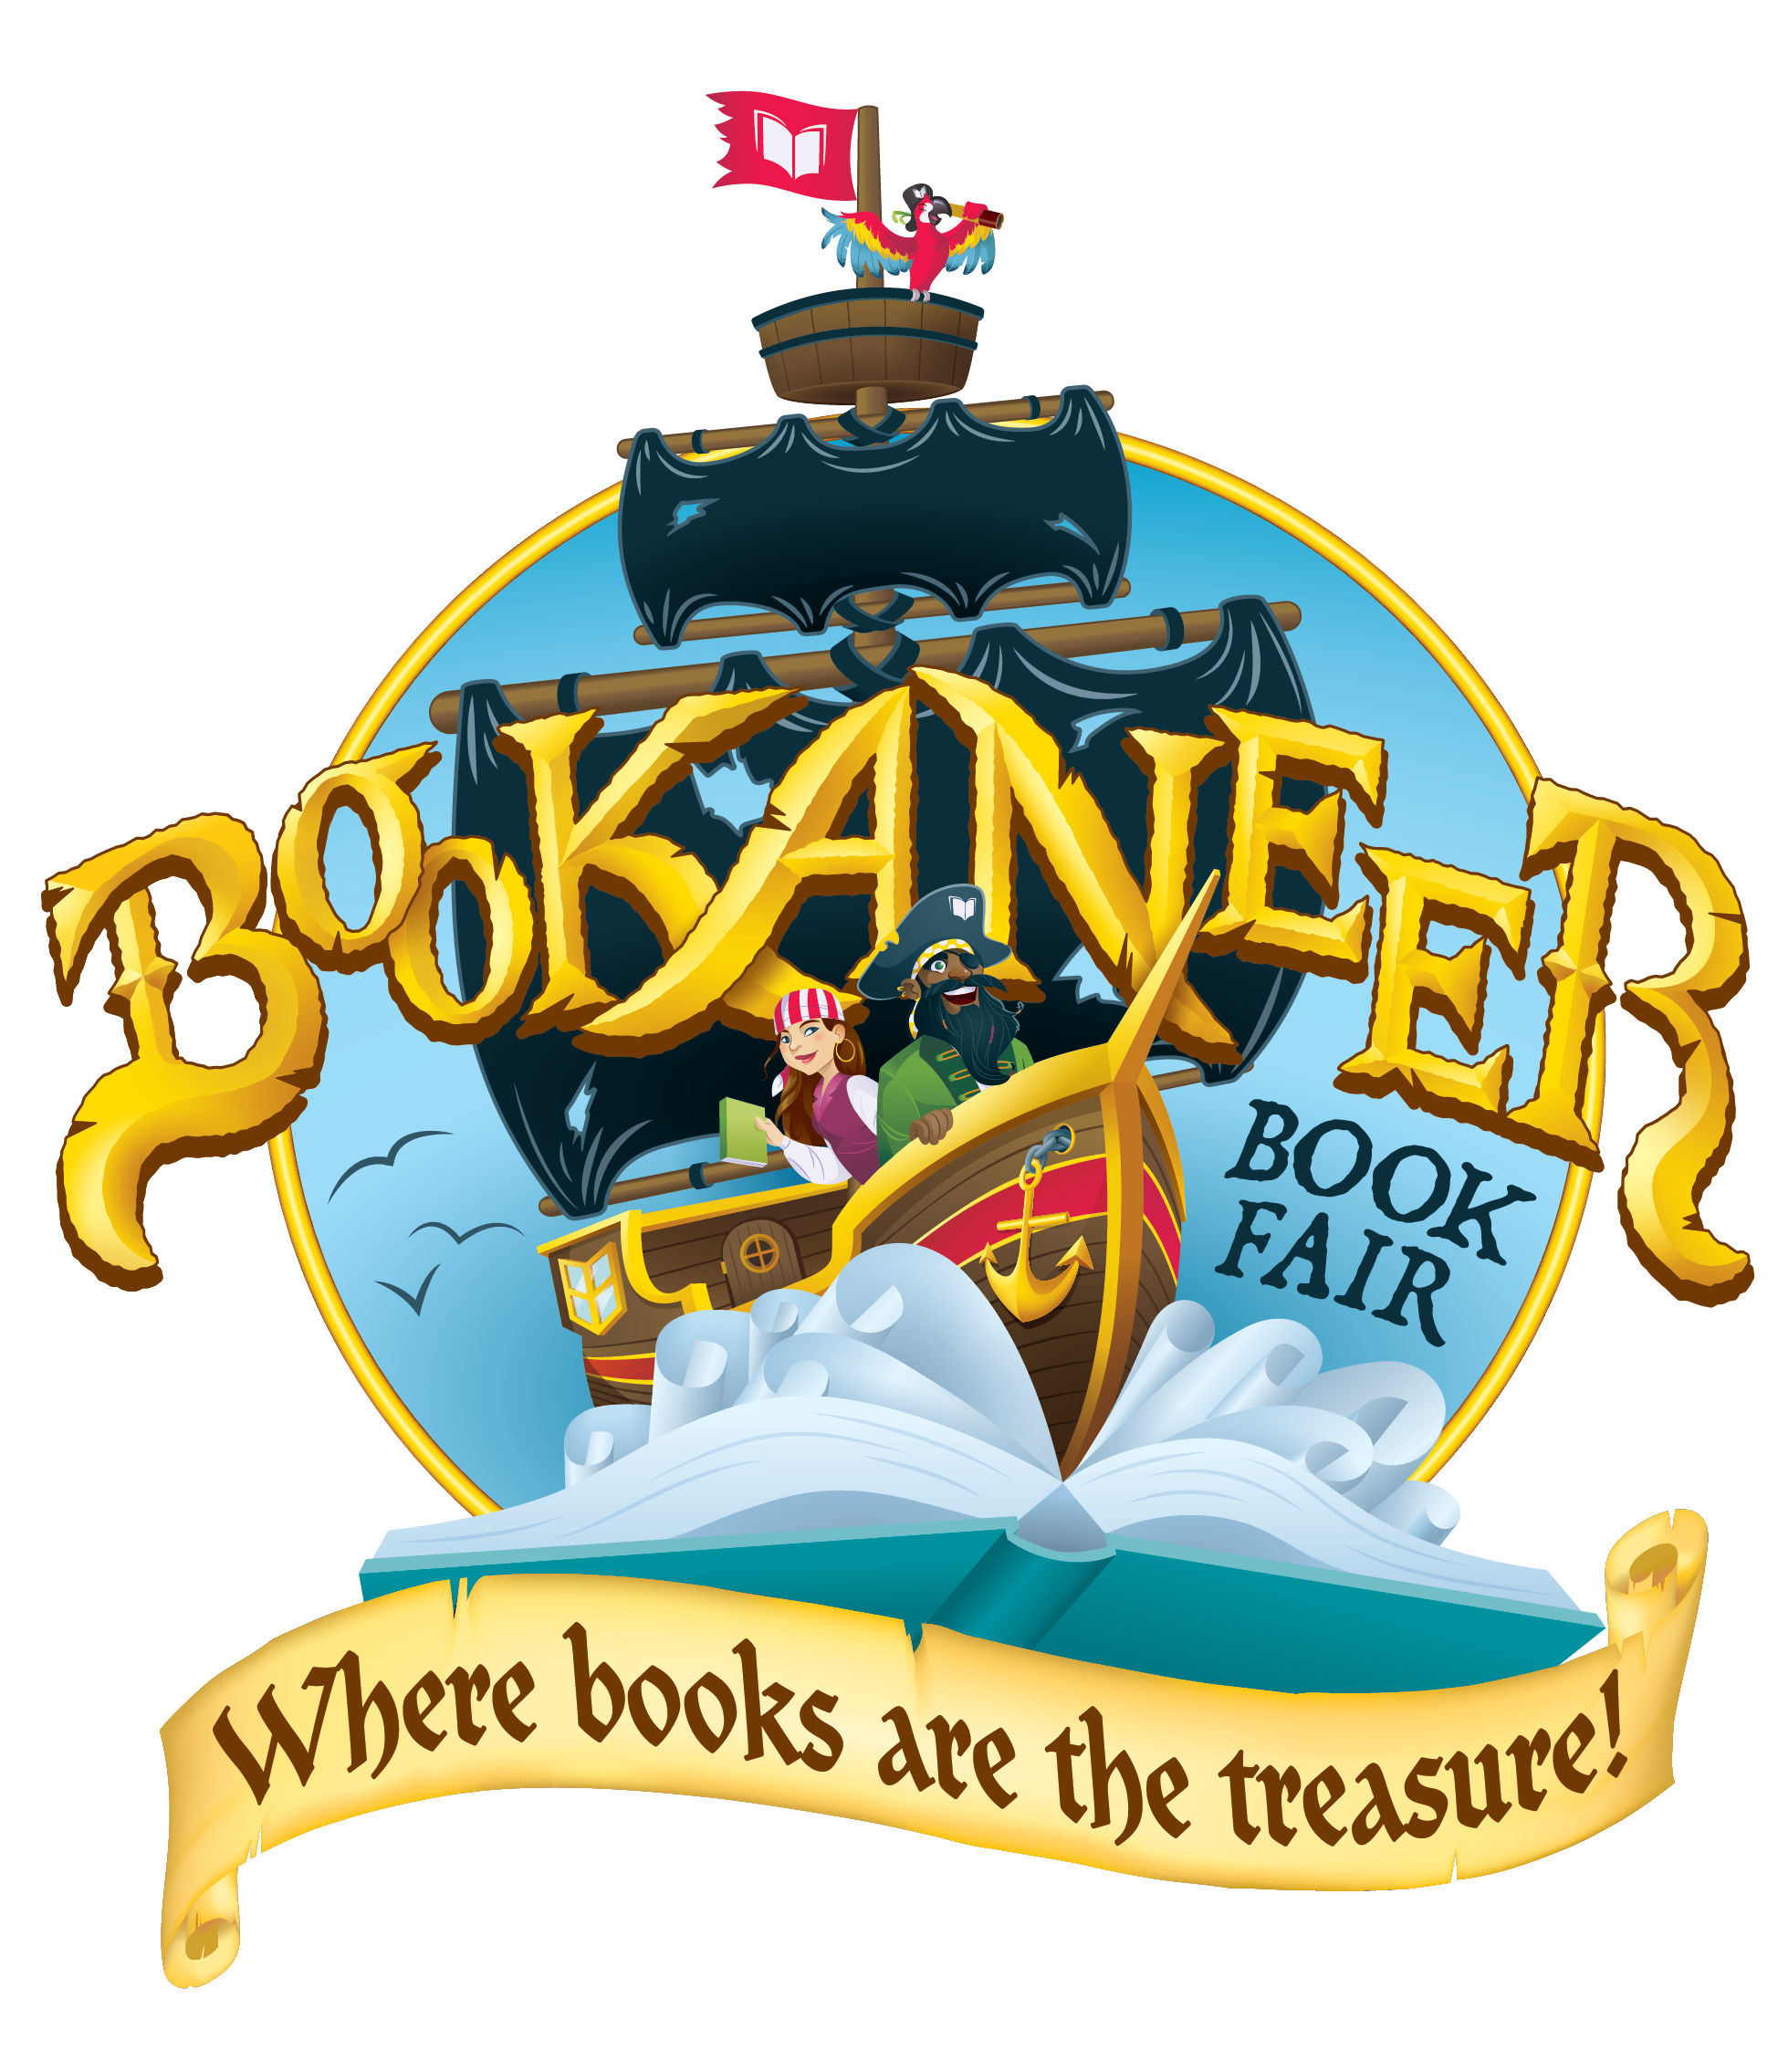 Book Fair Theme Image